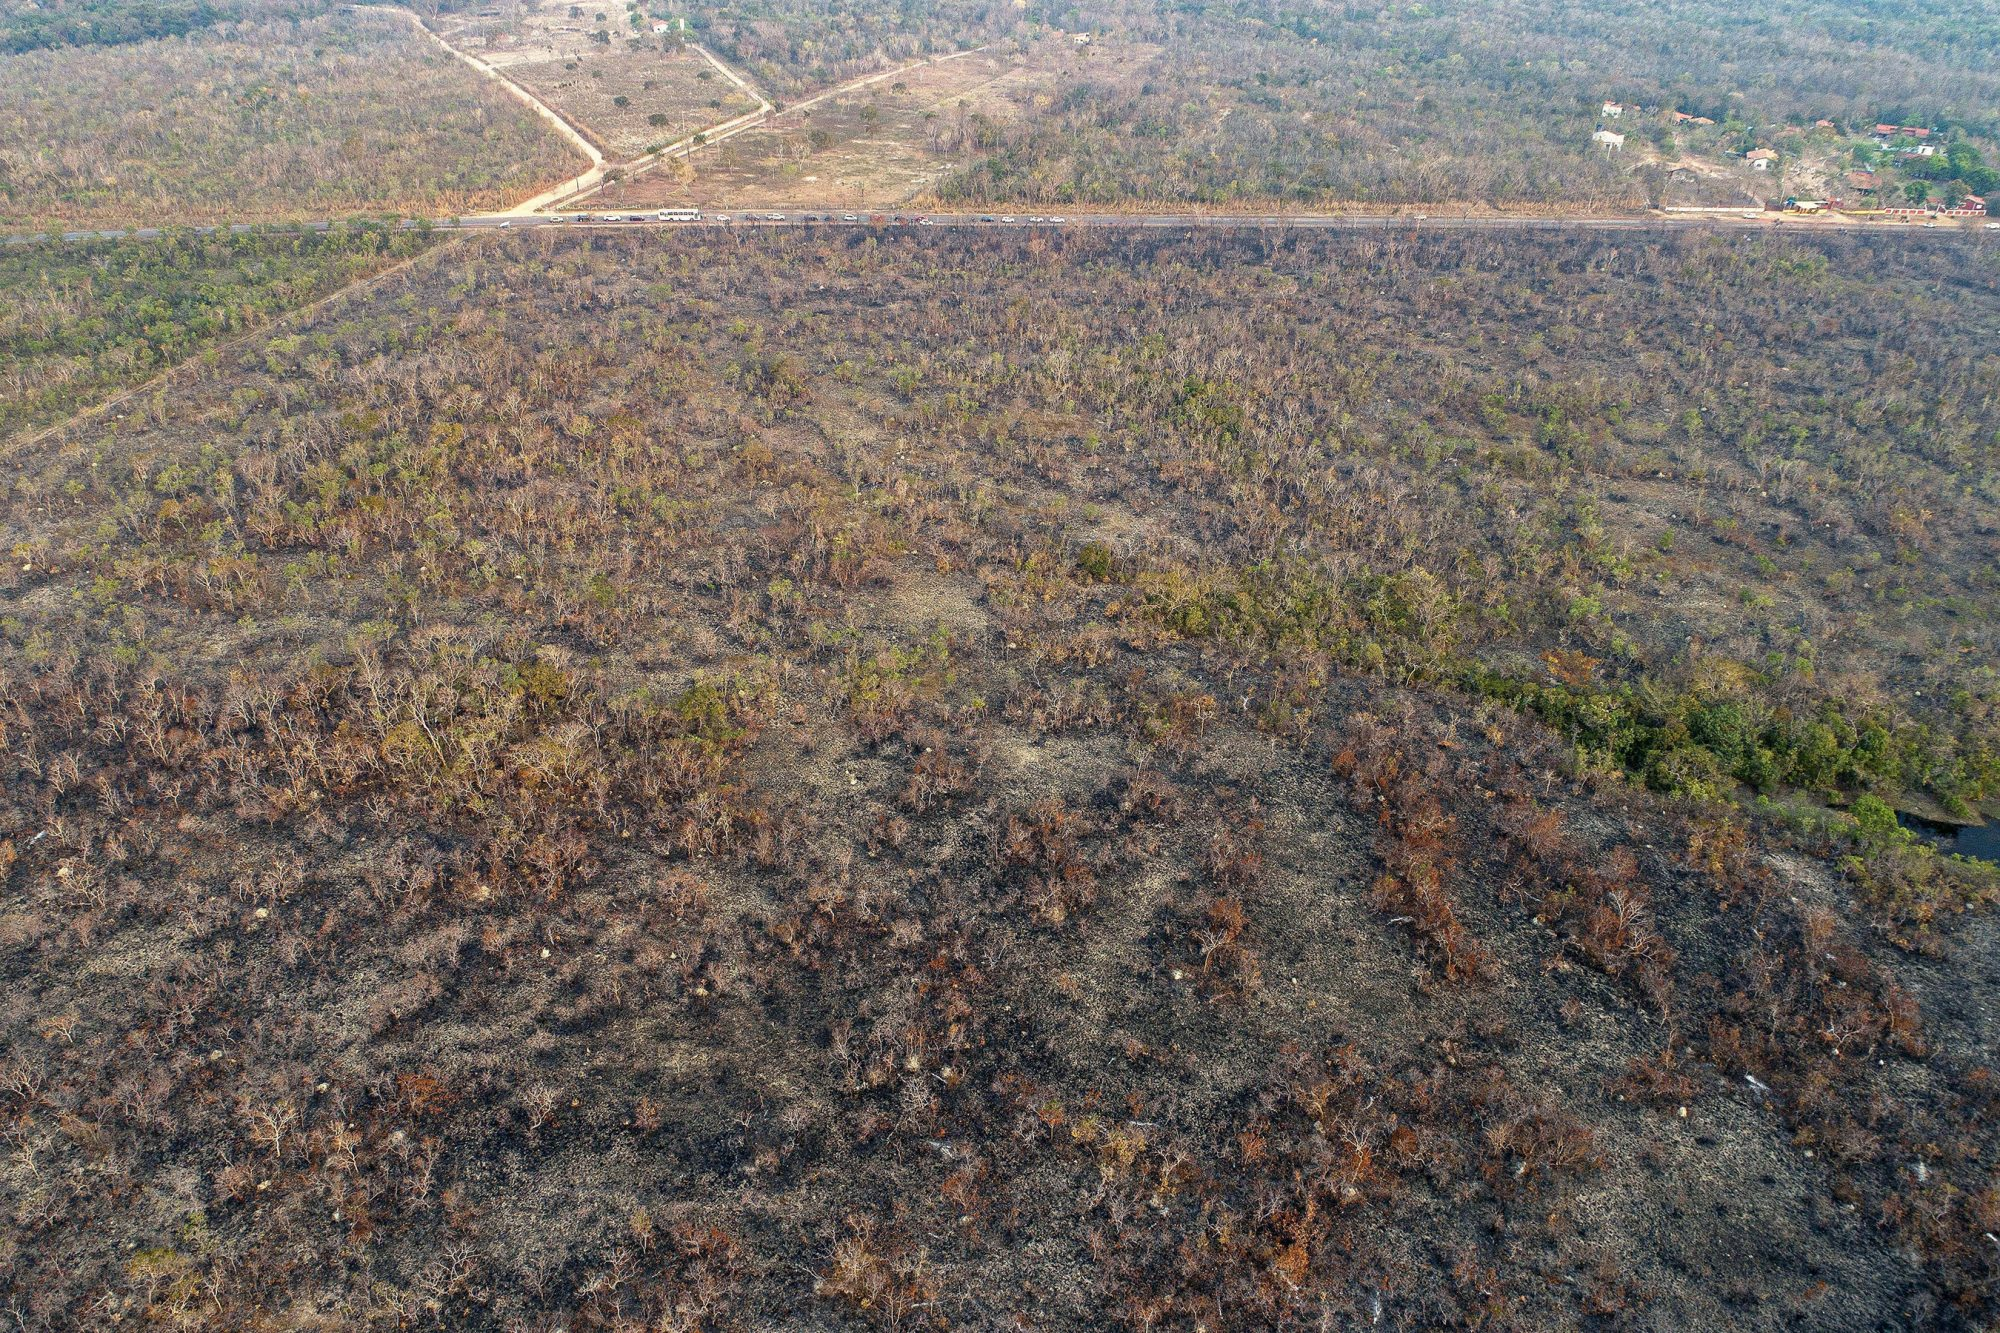 An aerial view of an area of land that has been scorched by fire in the state of Mato Grosso, Brazil, 20 August 2019 (issued 22 August 2019). According to media reports, the Brazilian Amazon region is suffering a record amount of fires, with an 84 percent increase on the same period last year. Brazilian Amazon region suffers record amount of fires, Mato Grosso, Brazil - 20 Aug 2019